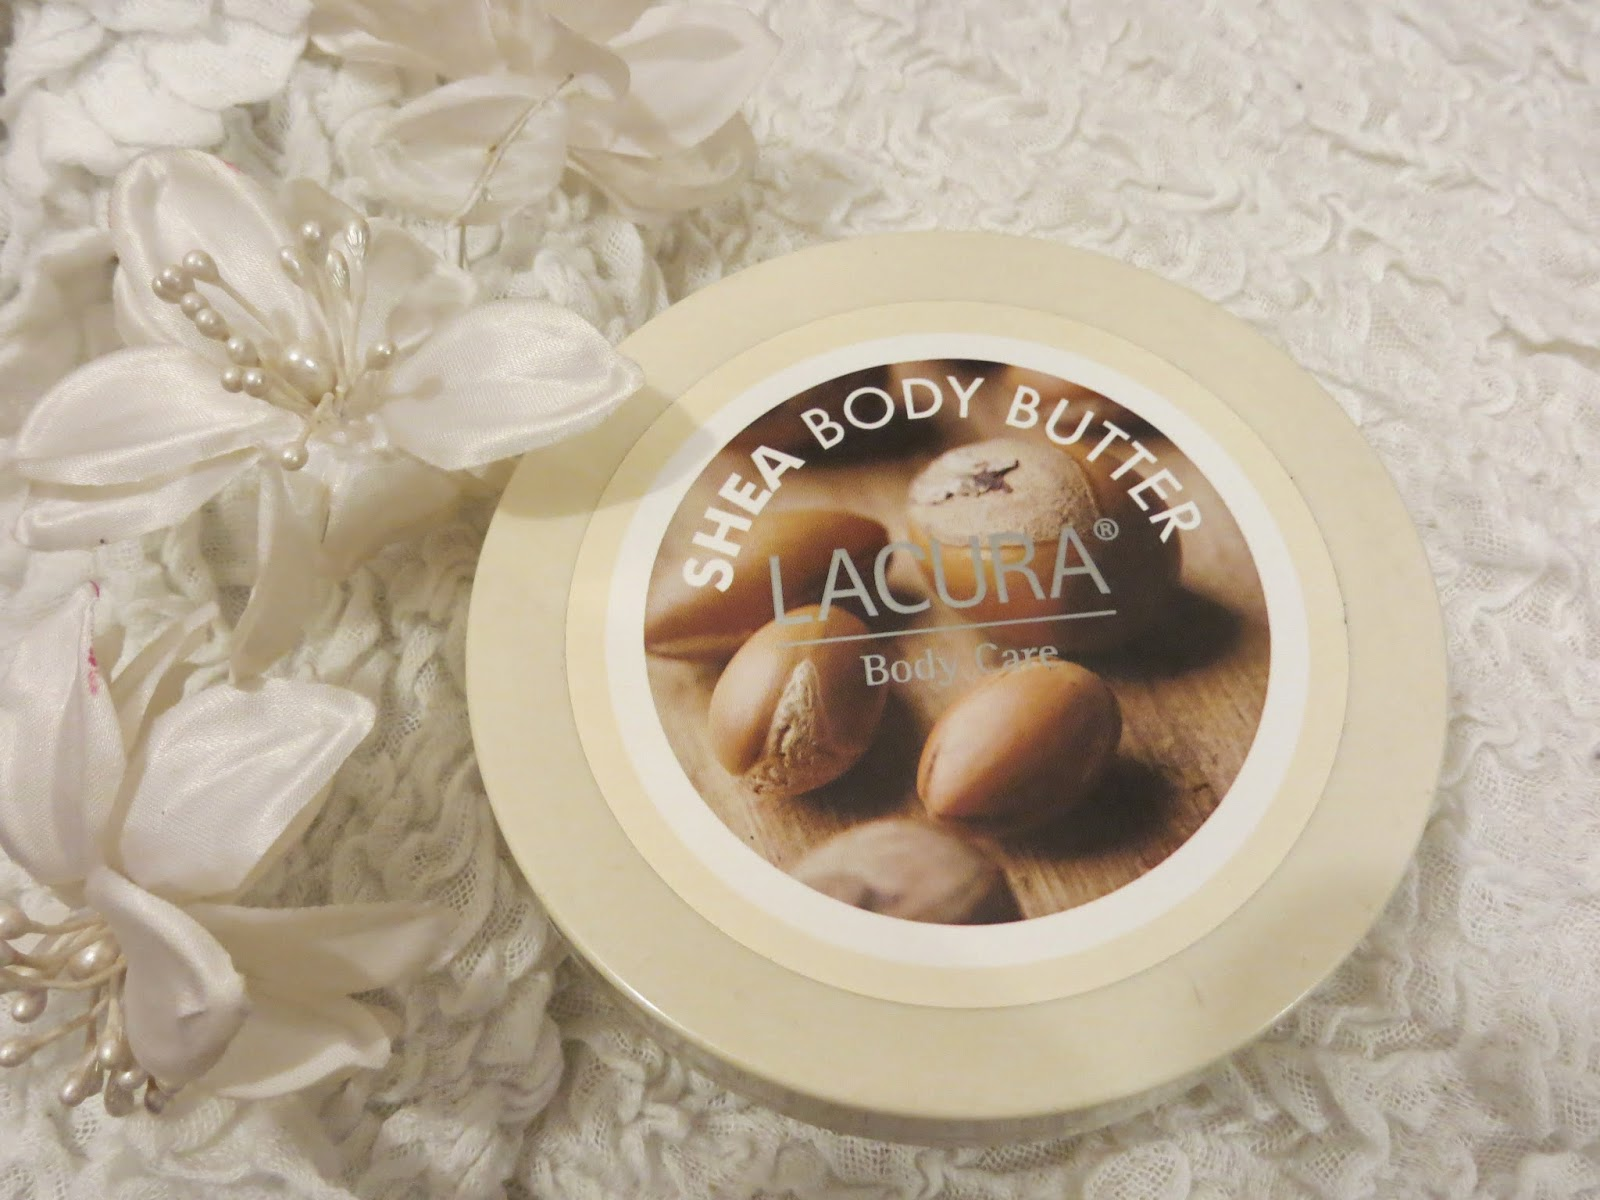 Review, Cheap skincare, Cheap, Lacura, Body Butter, Body Shop, Skin, Skincare, Body, Shea, Moisturiser, Blogger, Pretty